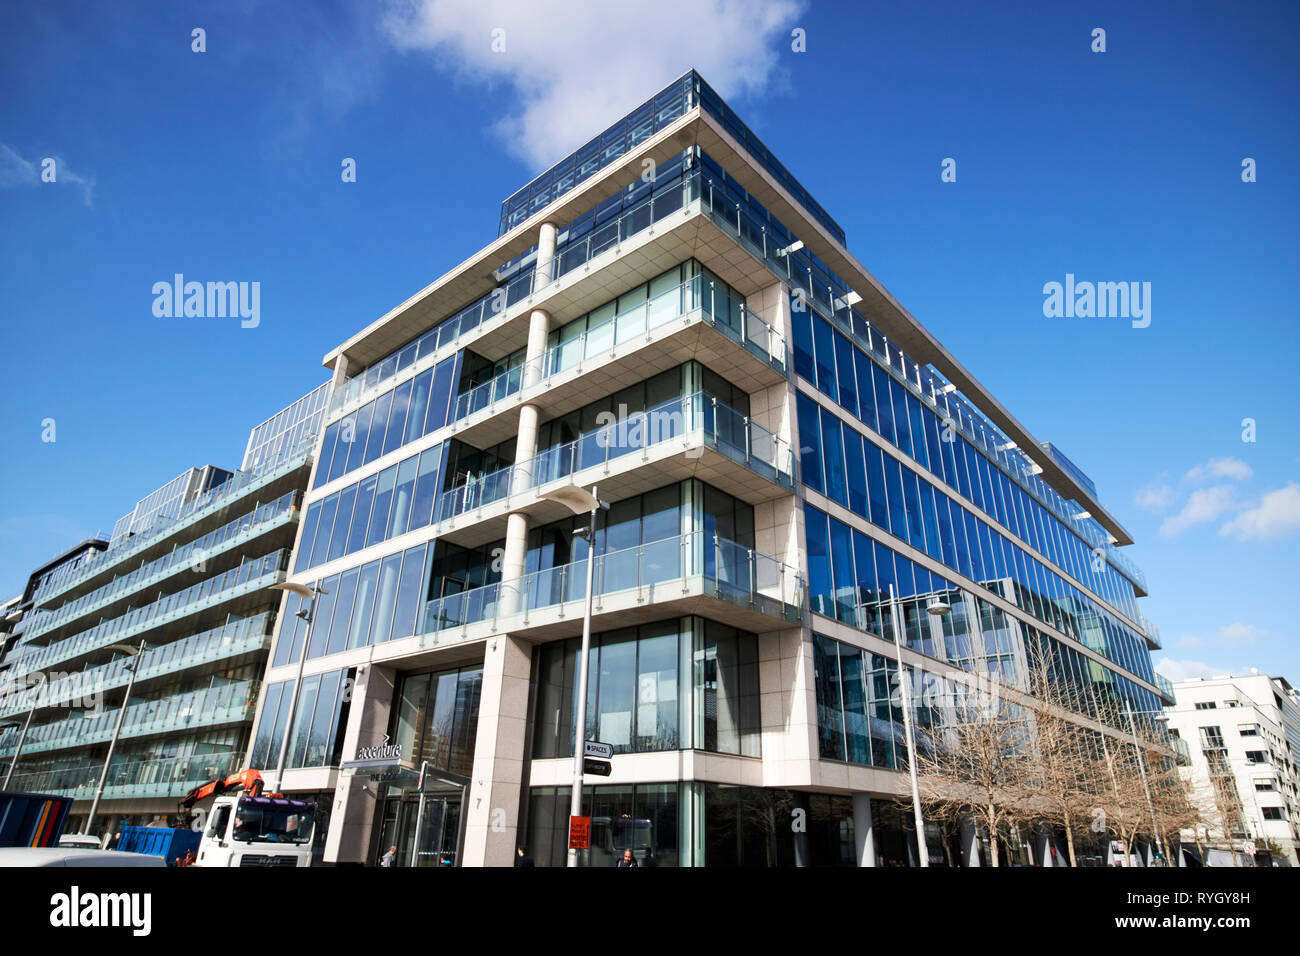 accenture offices in hanover quay in dublins docklands dublin 2 Dublin Republic of Ireland Europe - Stock Image